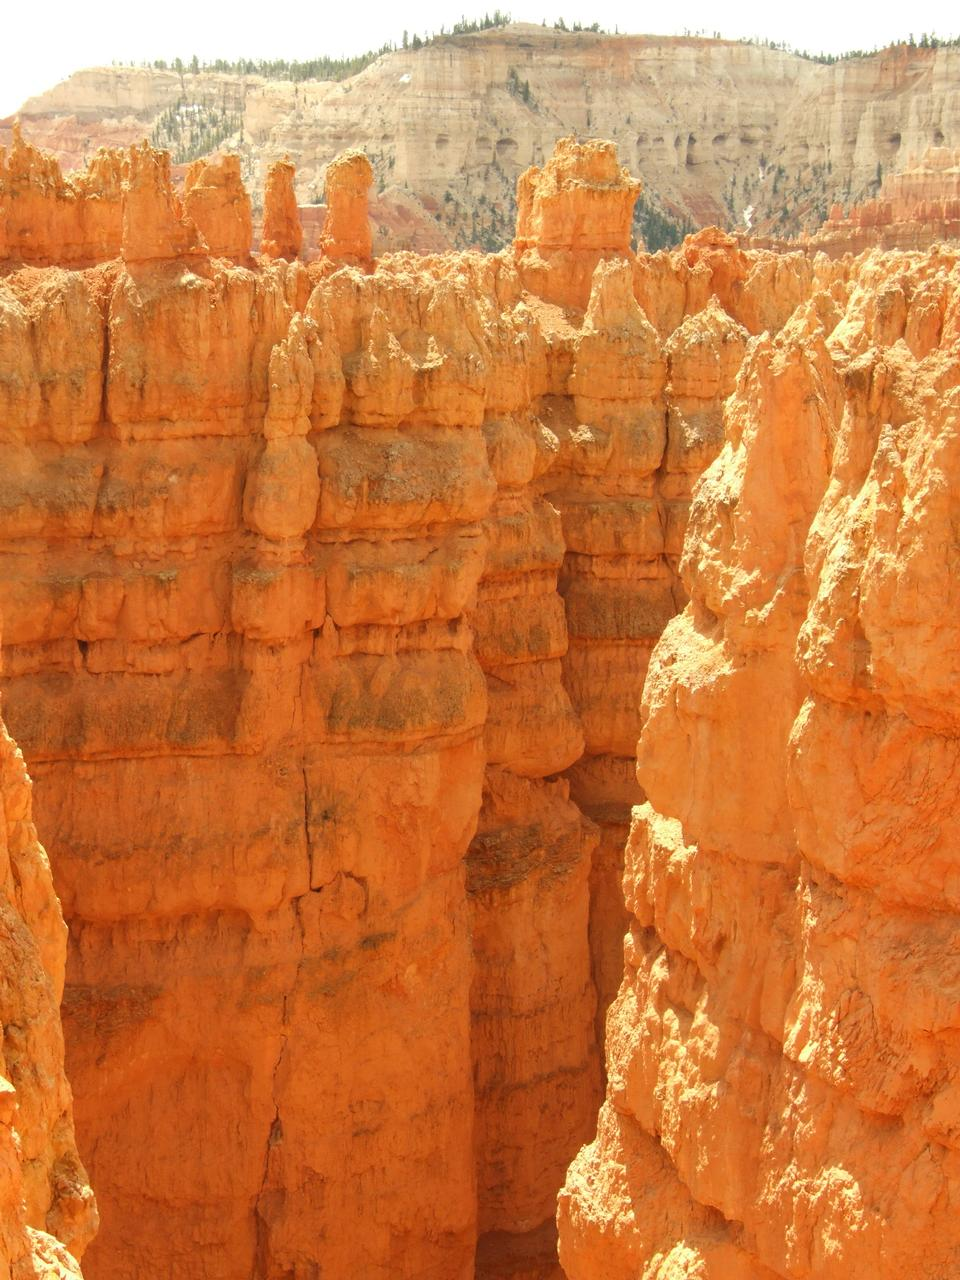 Free Photos: Bryce Canyon, Utah | zettasnap